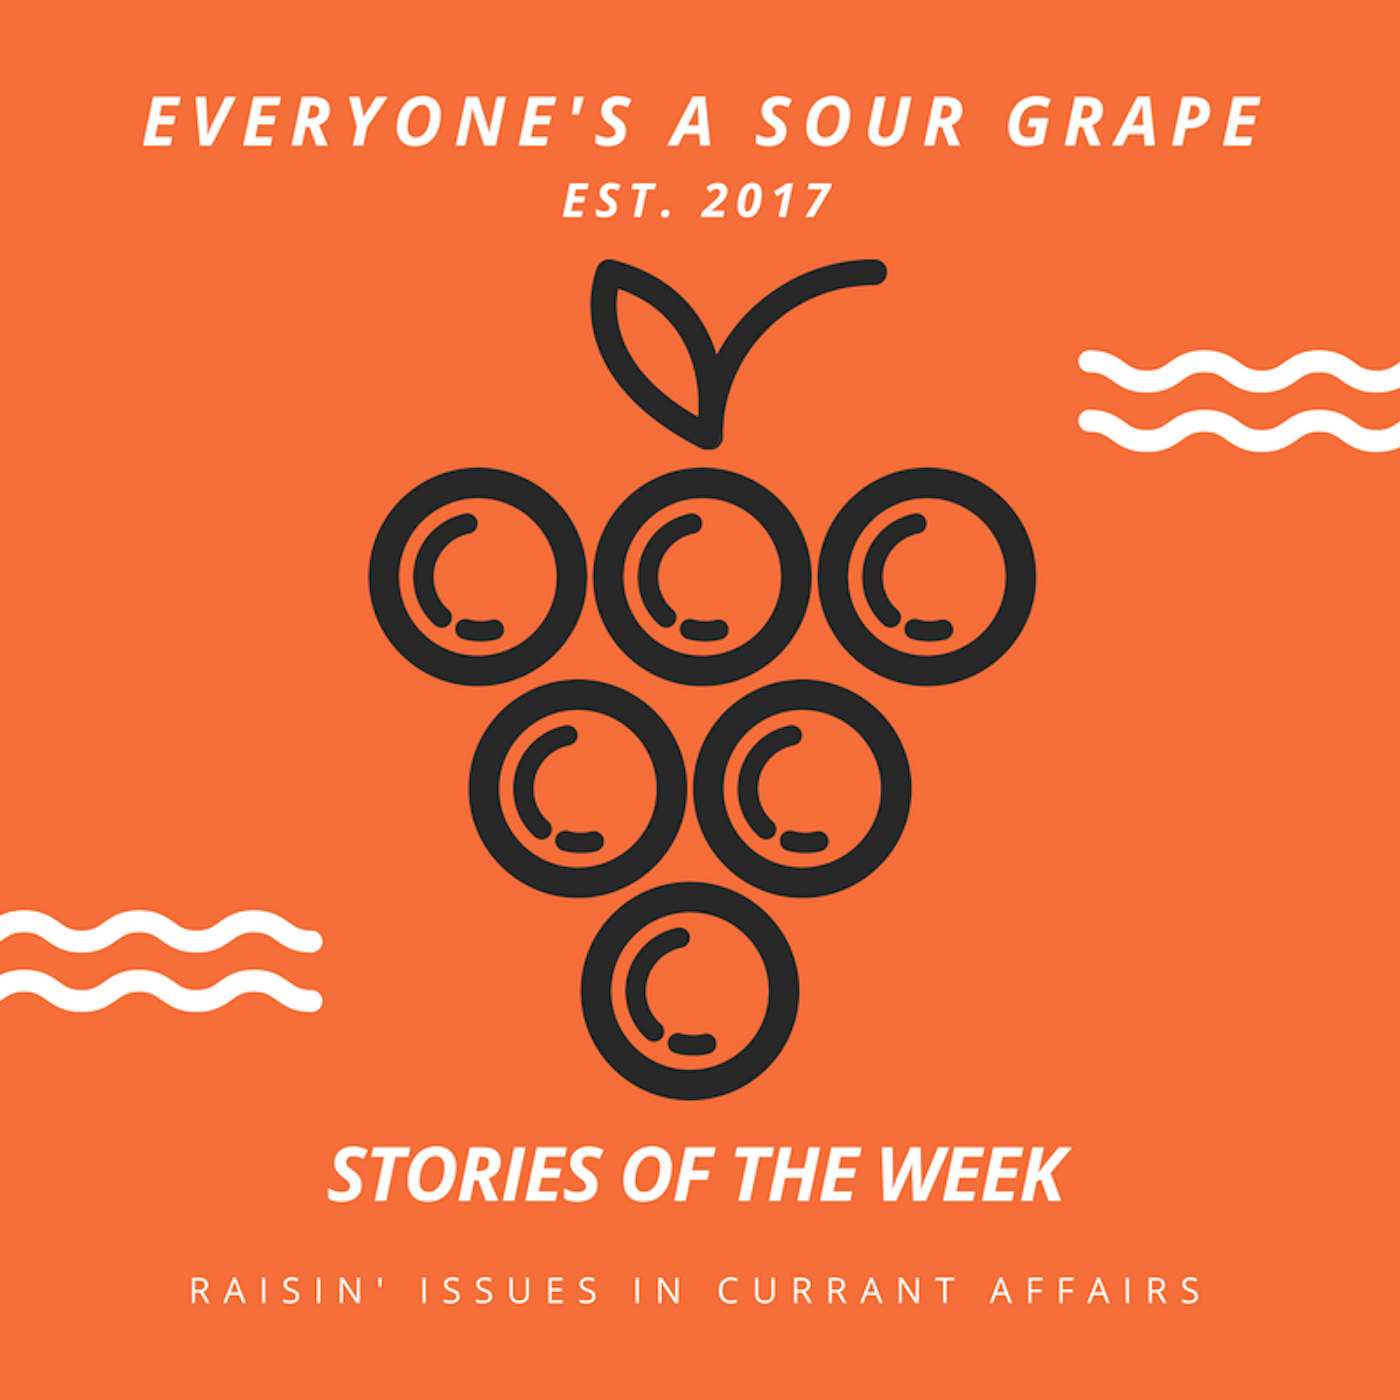 Everyone's a Sour Grape